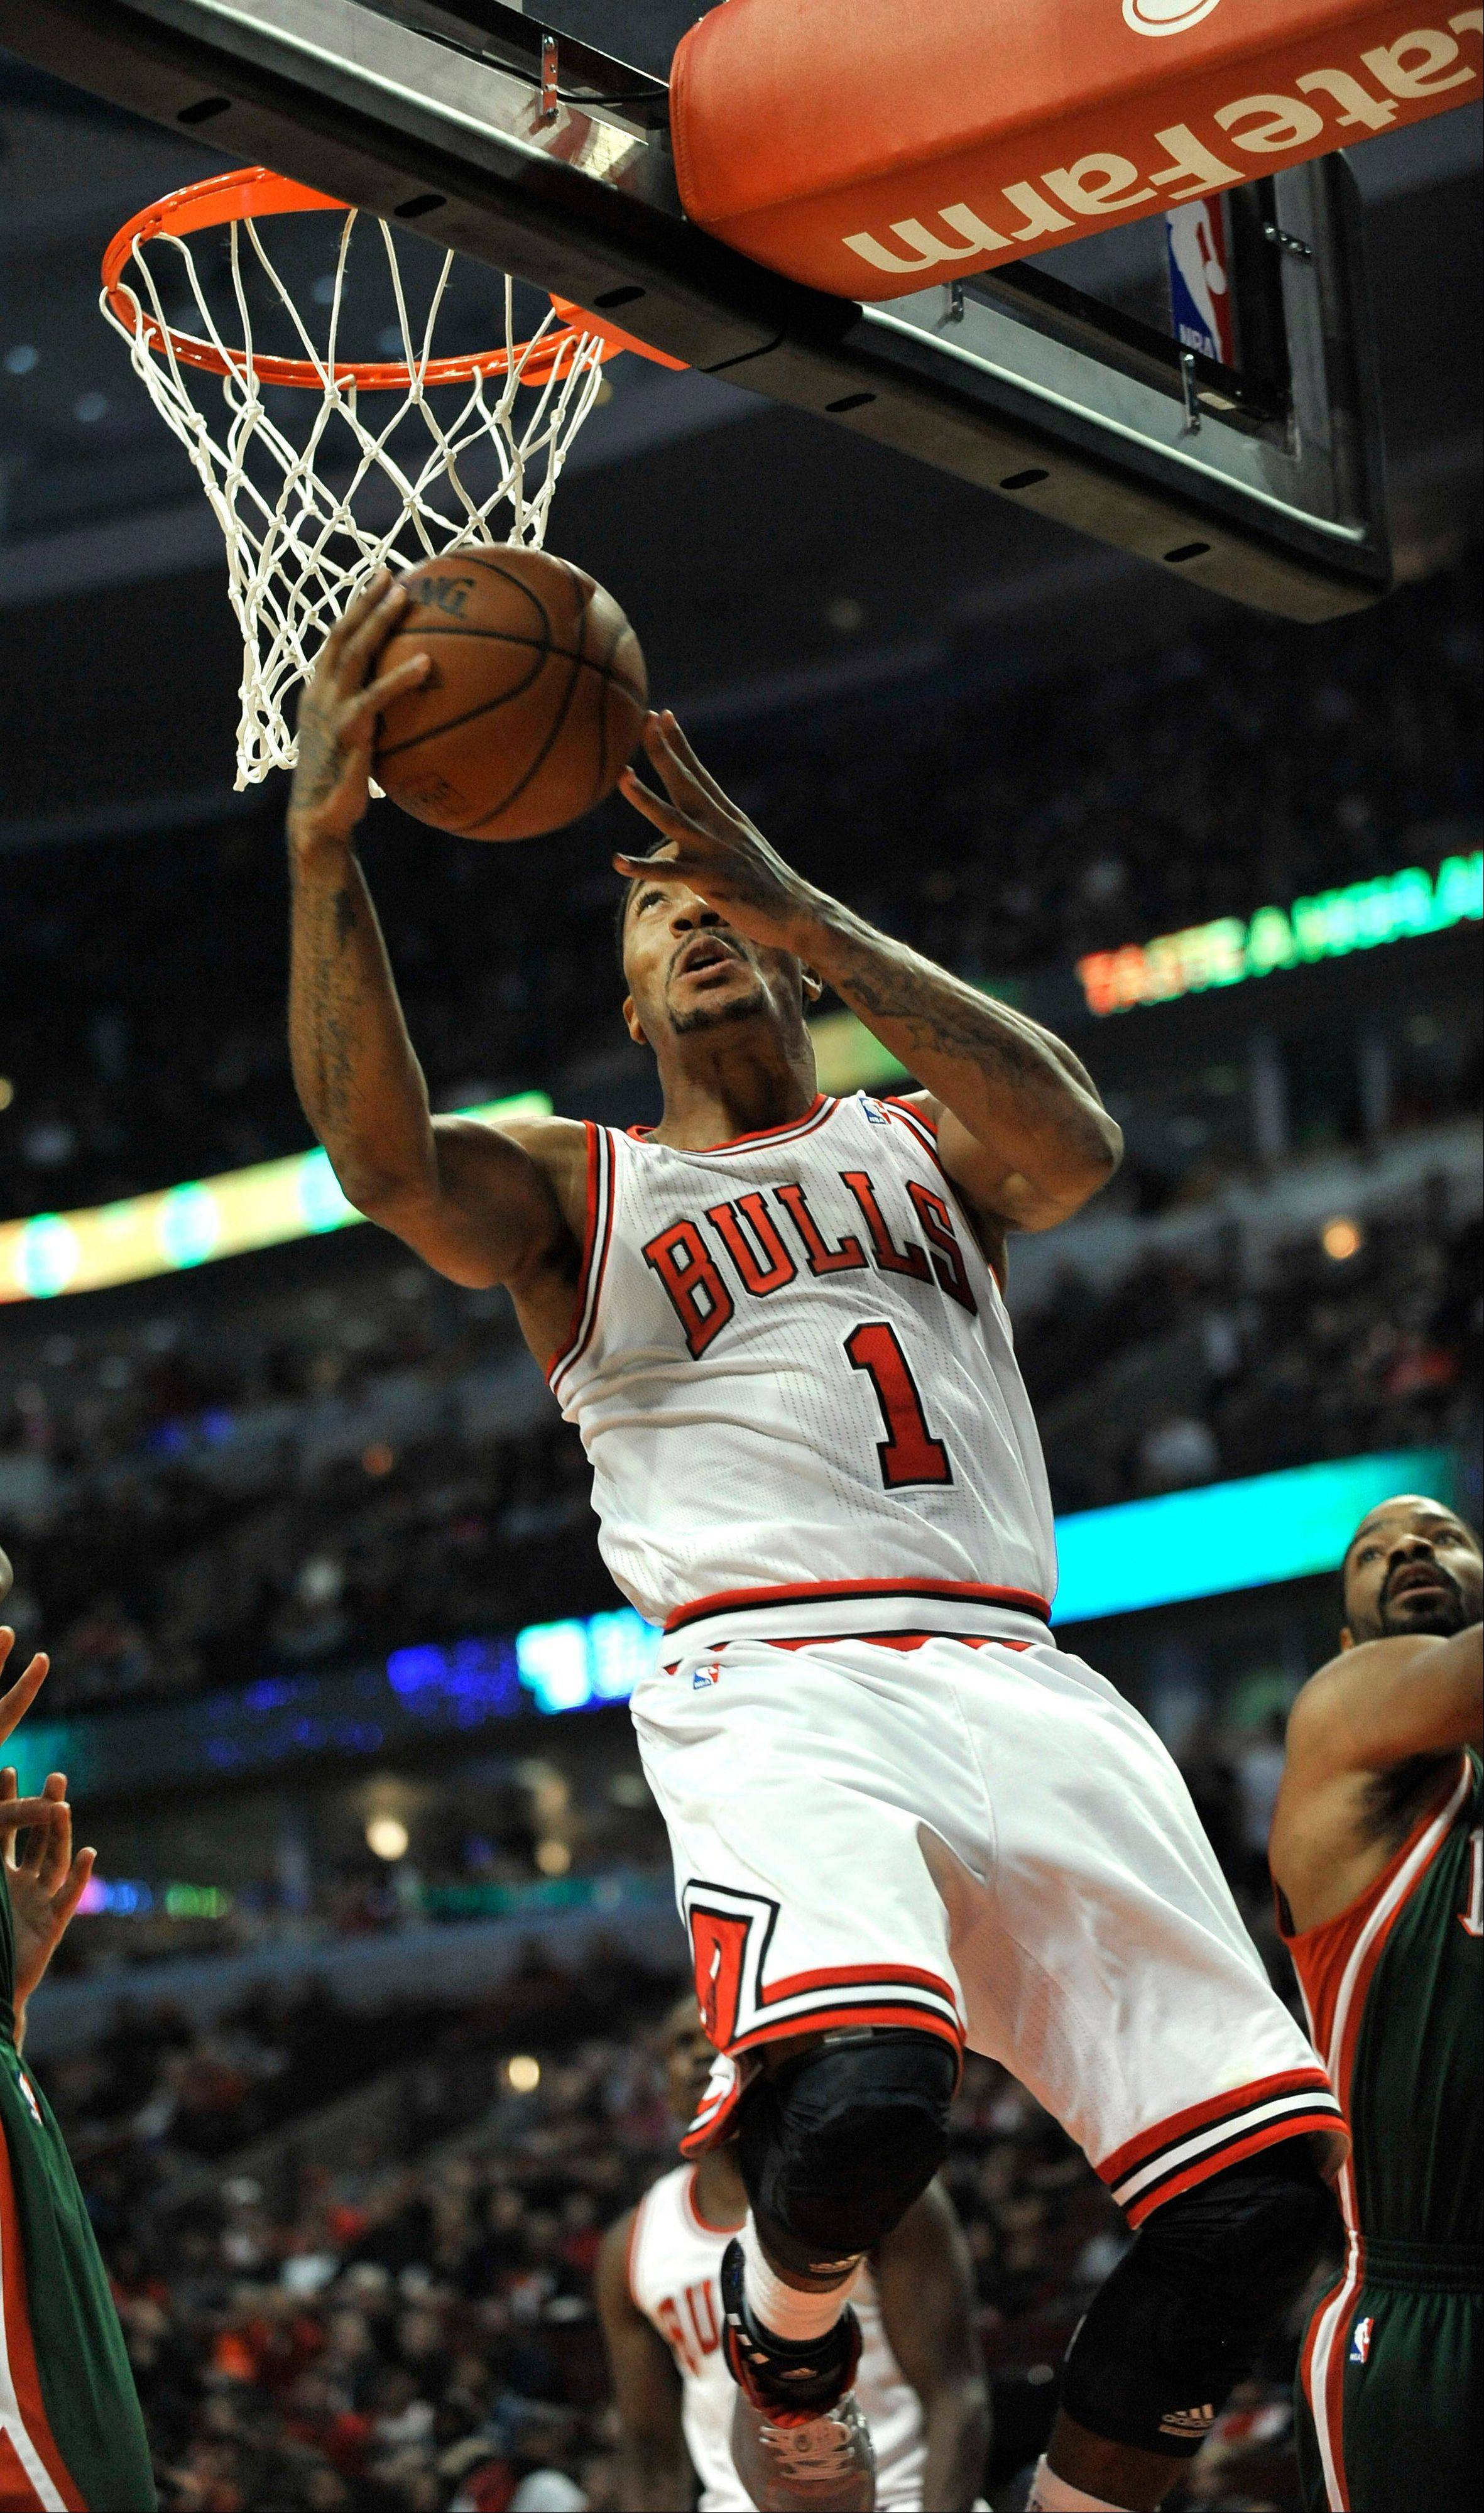 The Bulls' Derrick Rose goes up for a shot during Monday night's preseason victory over the Bucks at the United Center. Rose finished with 24 points as the Bulls improved to 6-0.